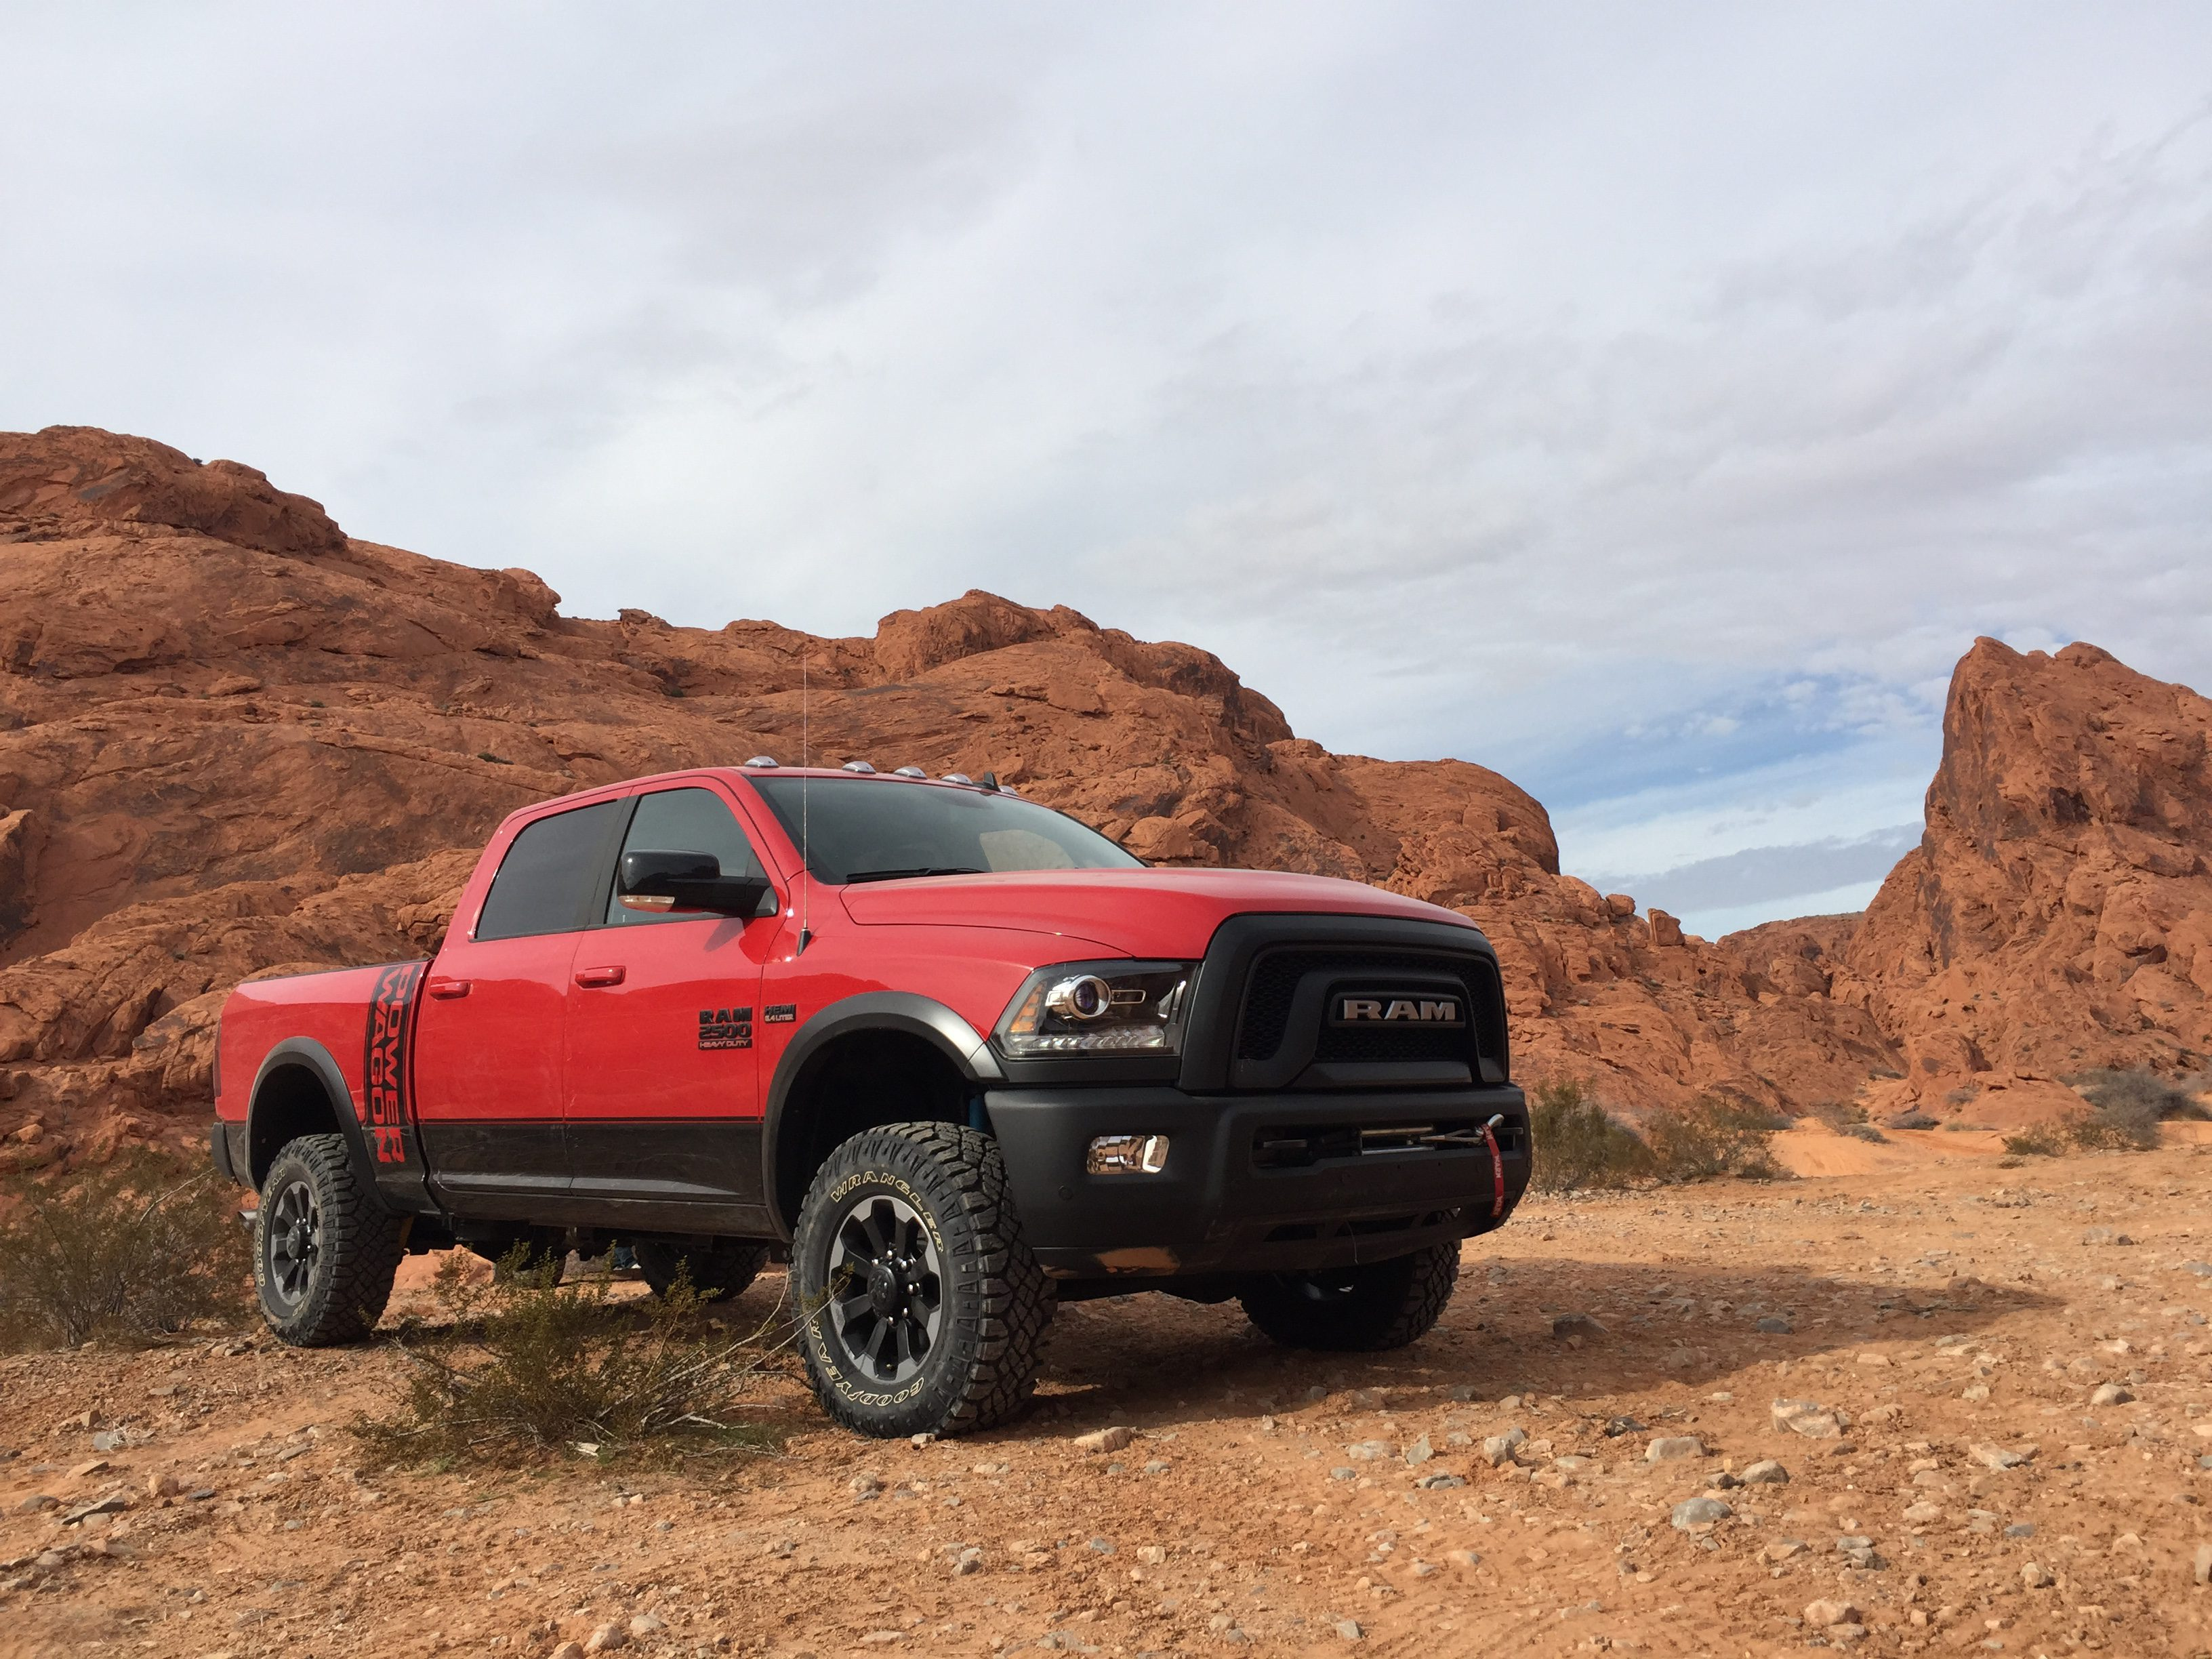 2017 ram 2500 power wagon first drive review macho man. Black Bedroom Furniture Sets. Home Design Ideas